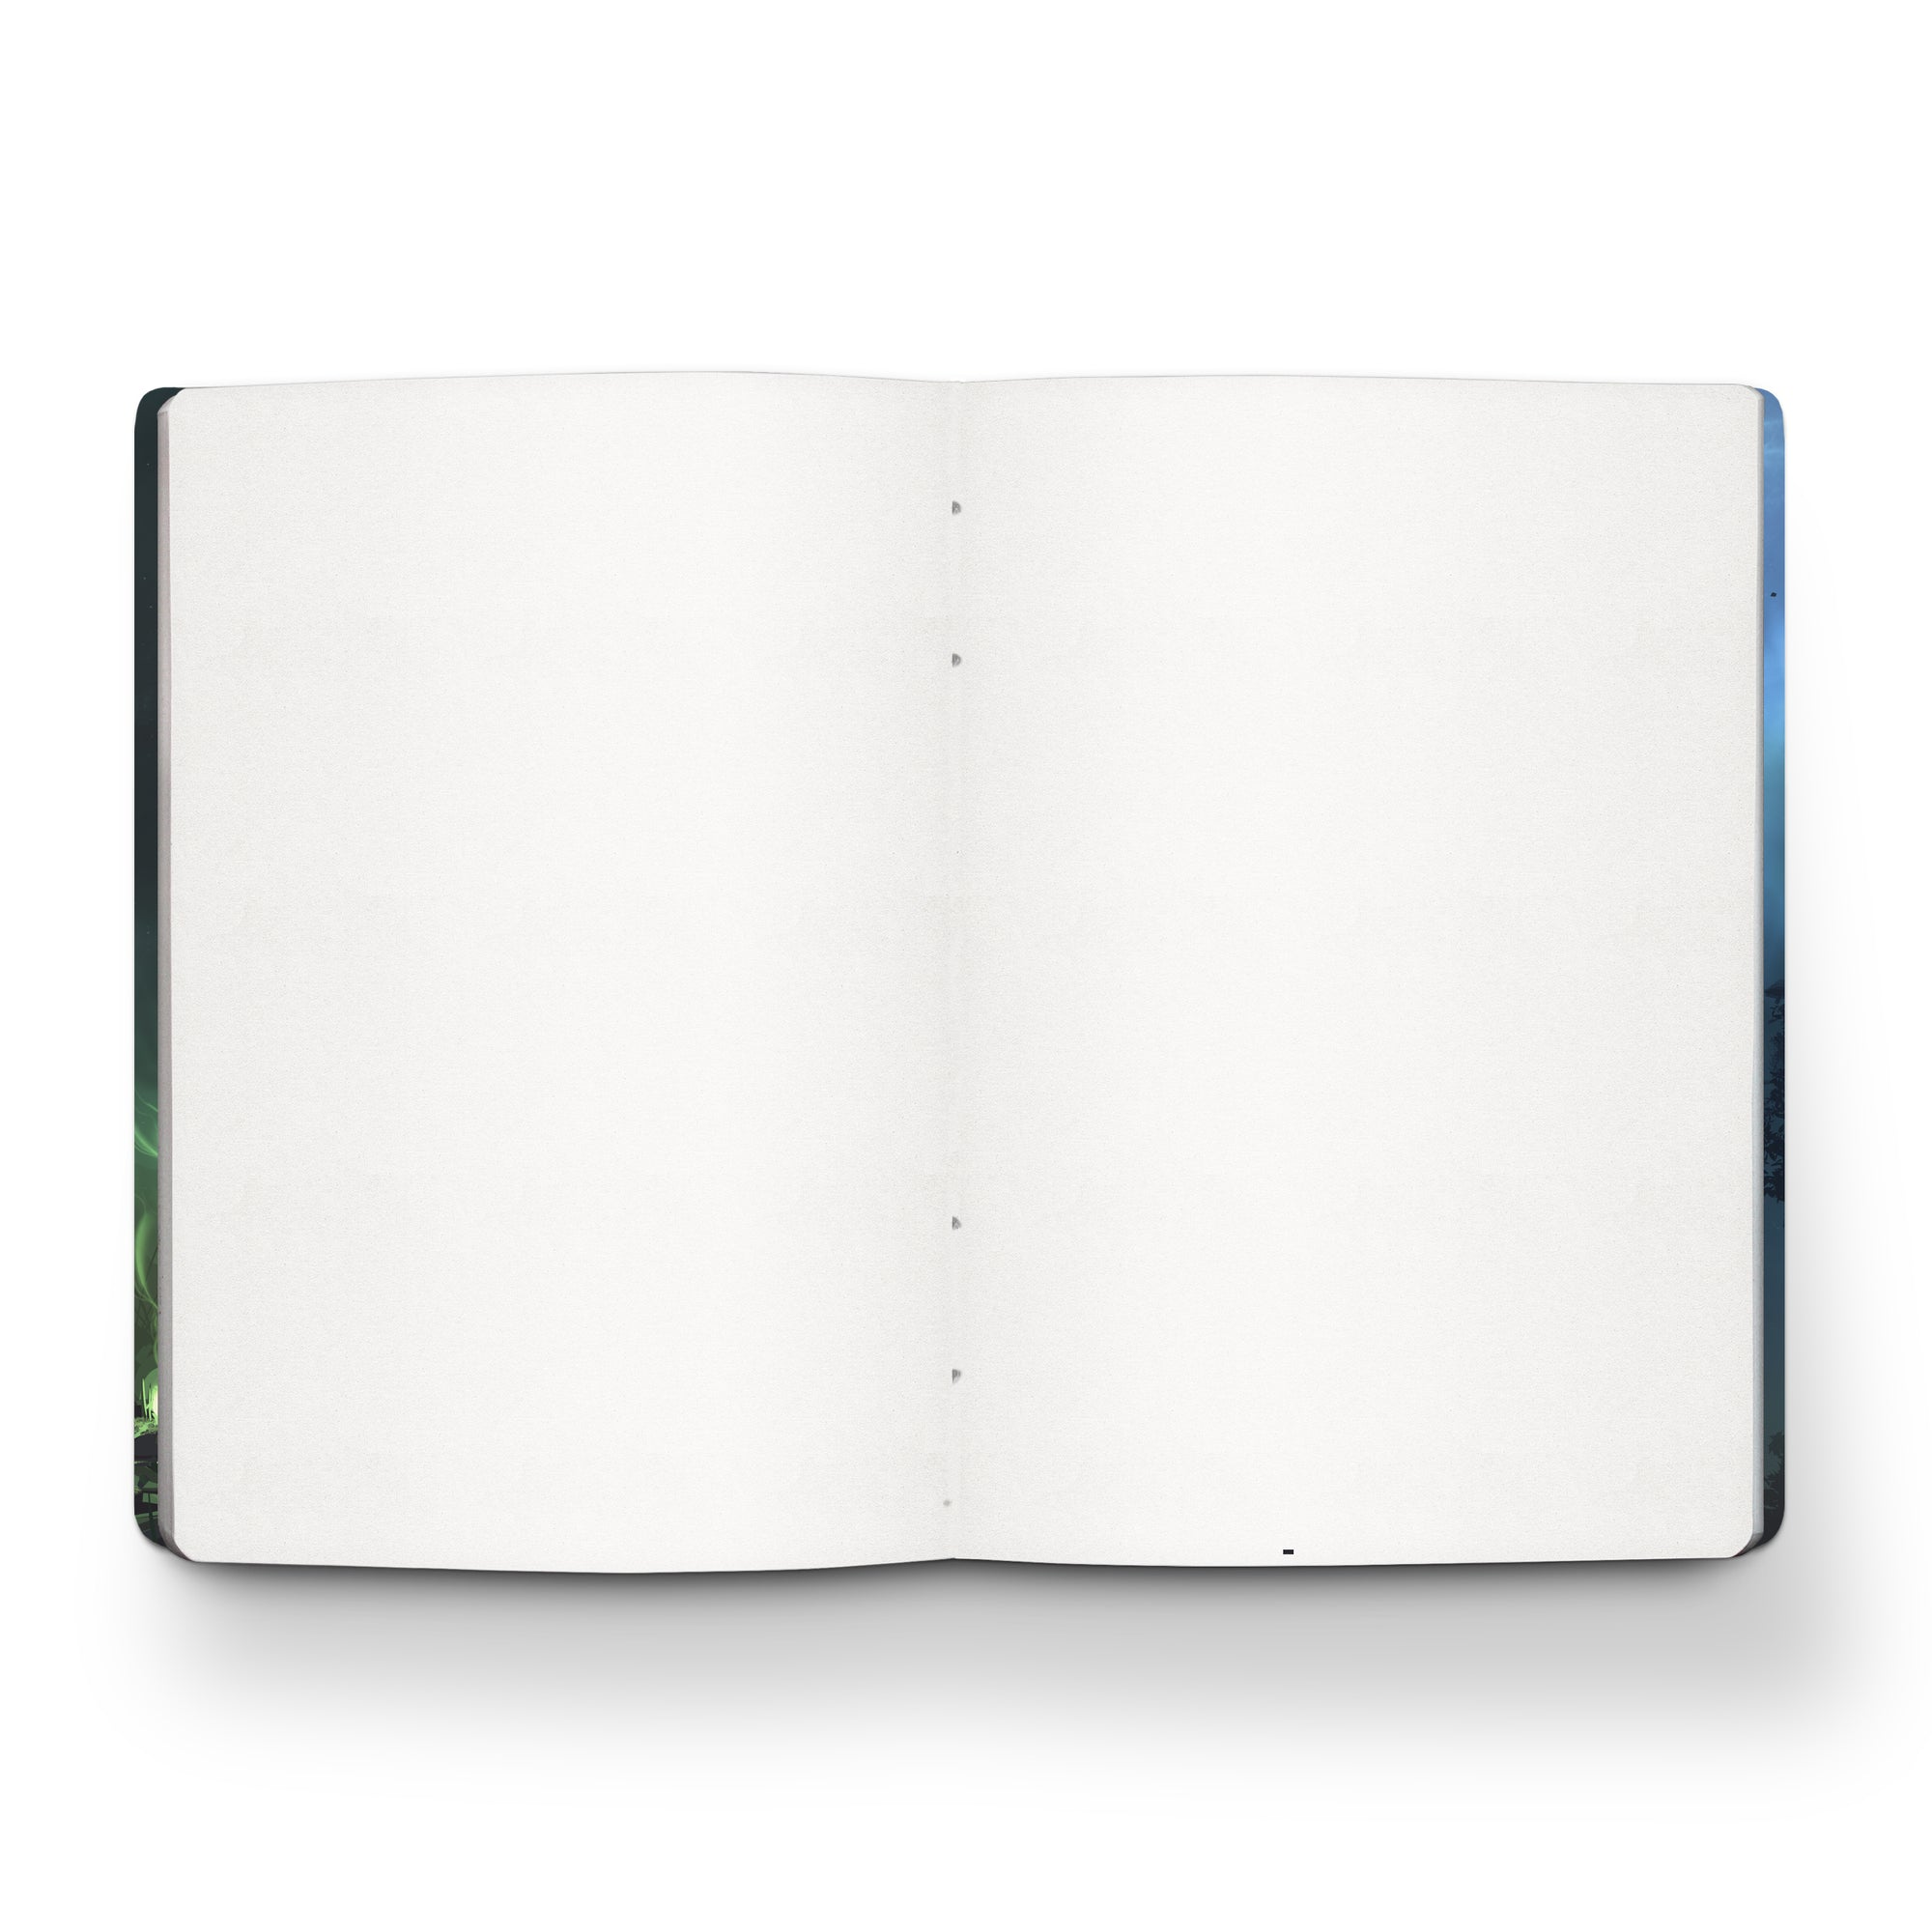 "Aesop Rock ""SWFG"" Notebook"